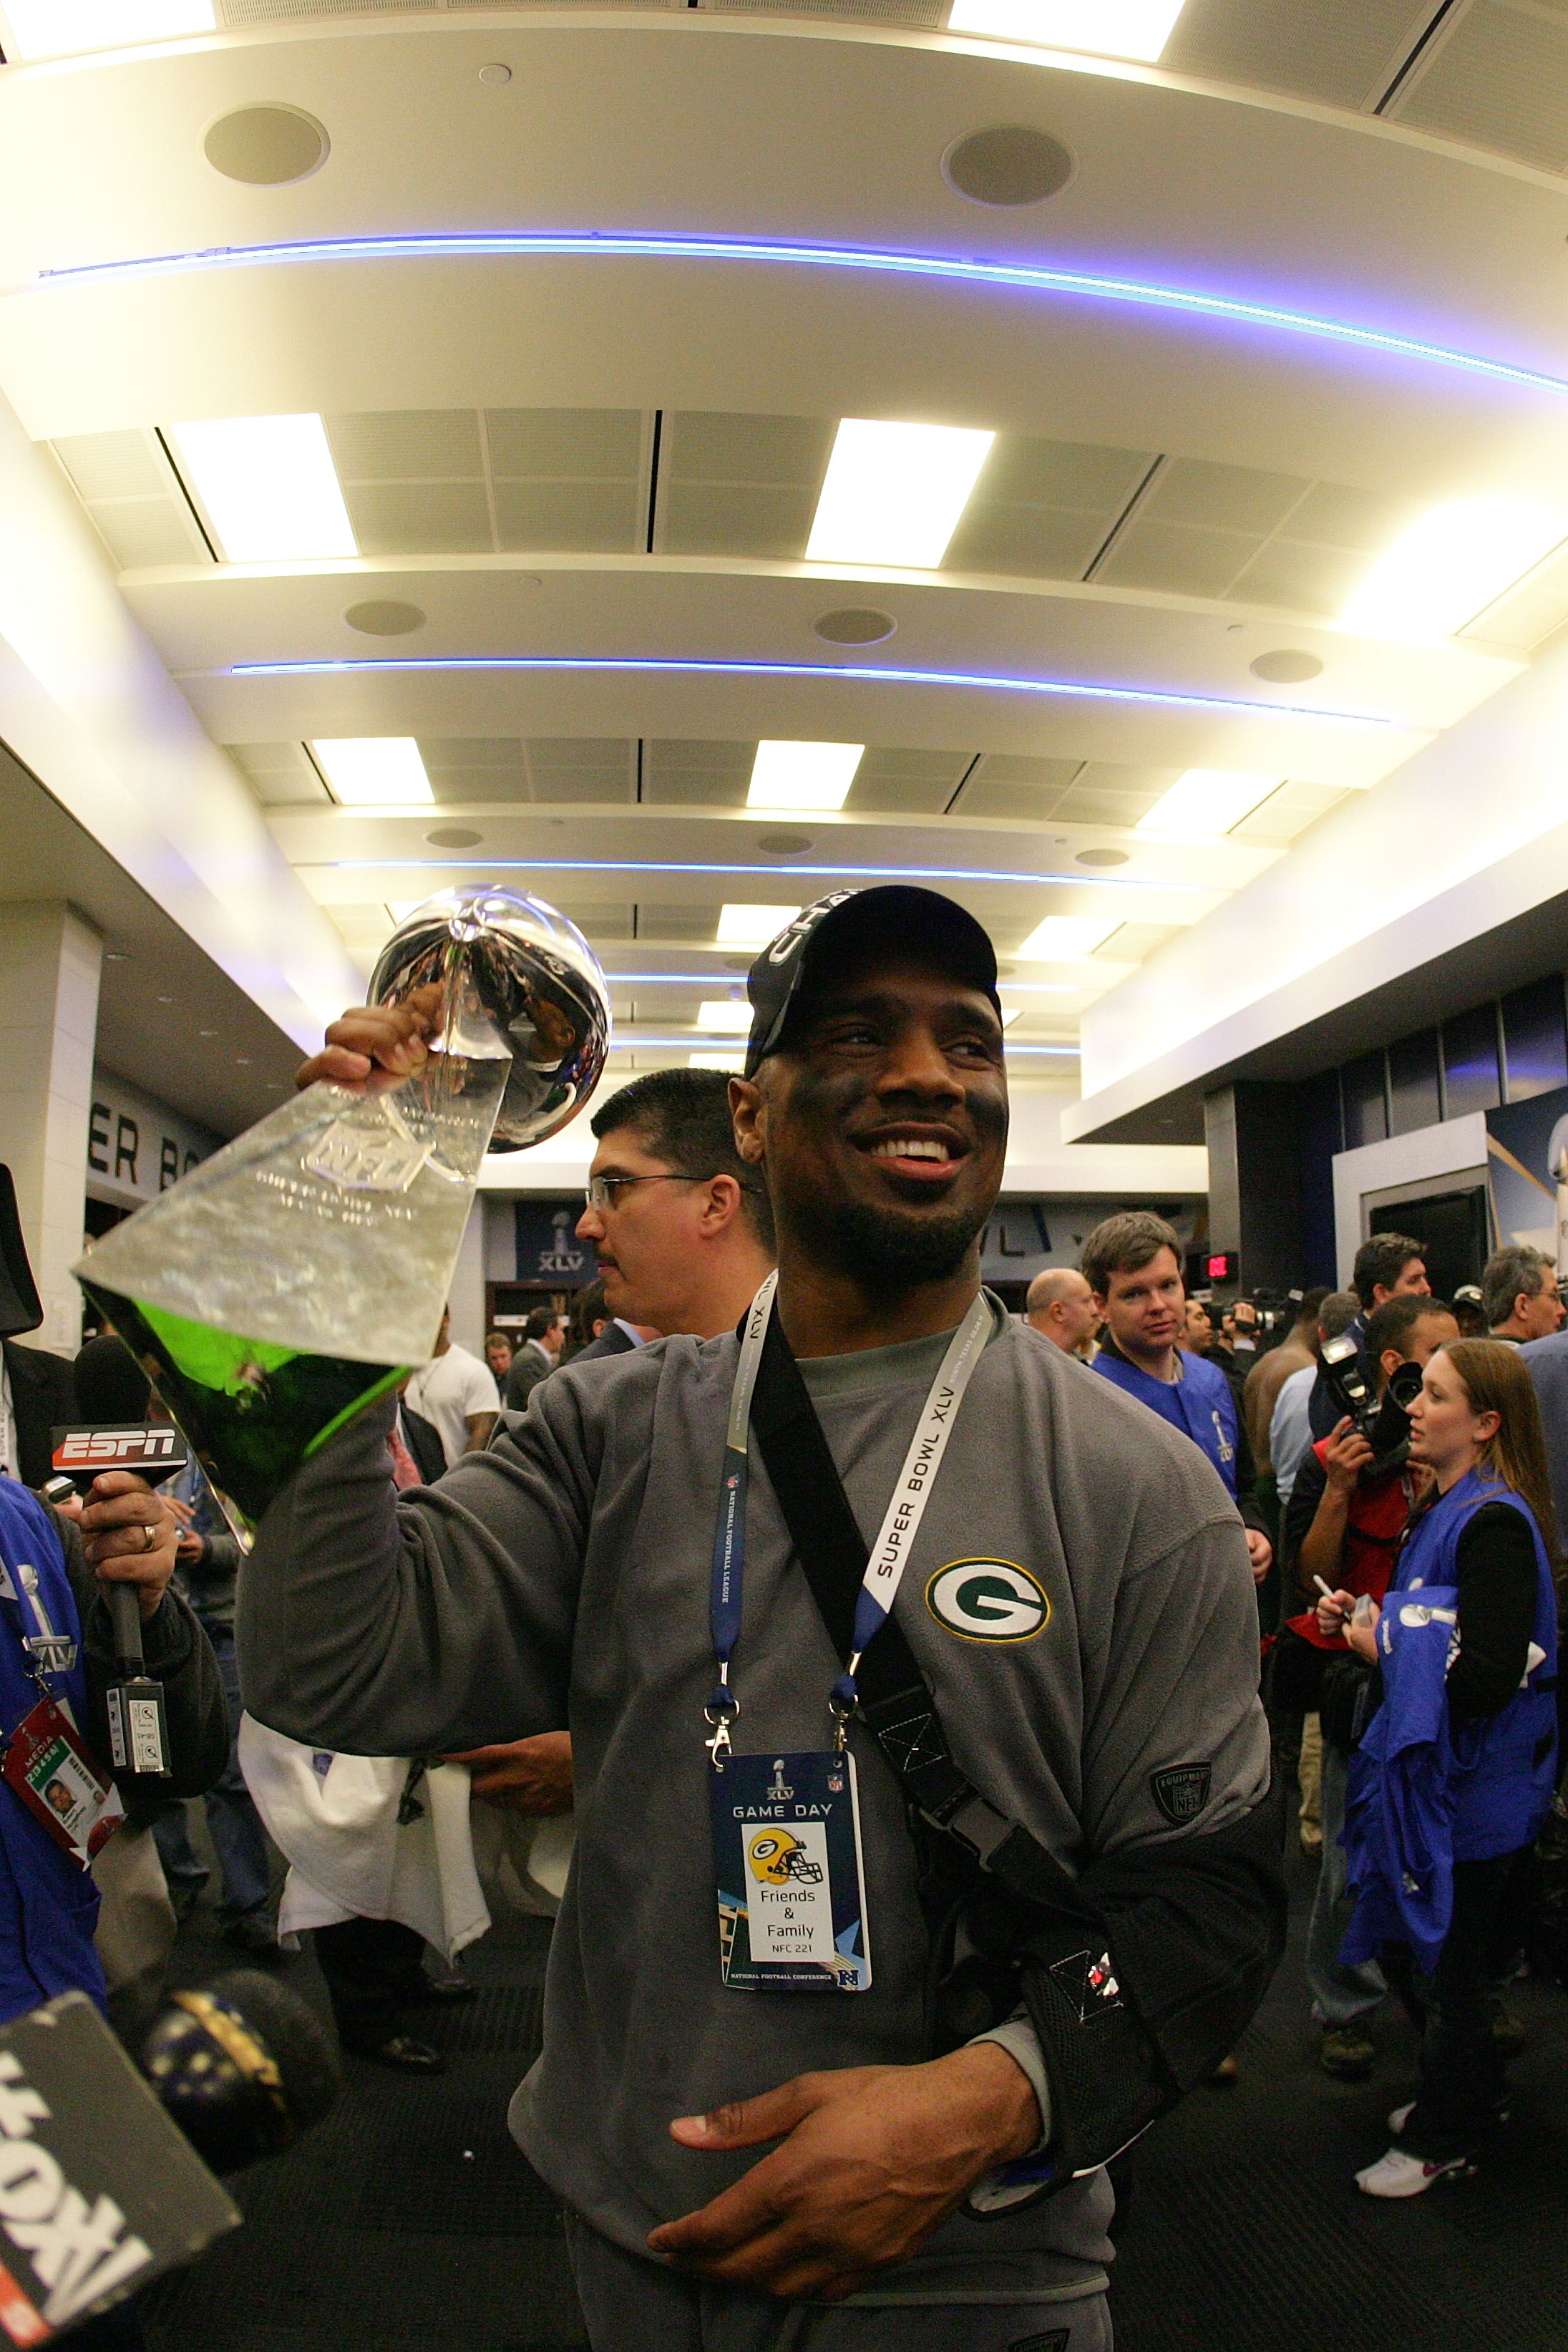 ARLINGTON, TX - FEBRUARY 06: Charles Woodson #21 of the Green Bay Packers celebrates in the locker room with the Vince Lombardi Trophy after winning Super Bowl XLV 31-25 against the Pittsburgh Steelers at Cowboys Stadium on February 6, 2011 in Arlington,